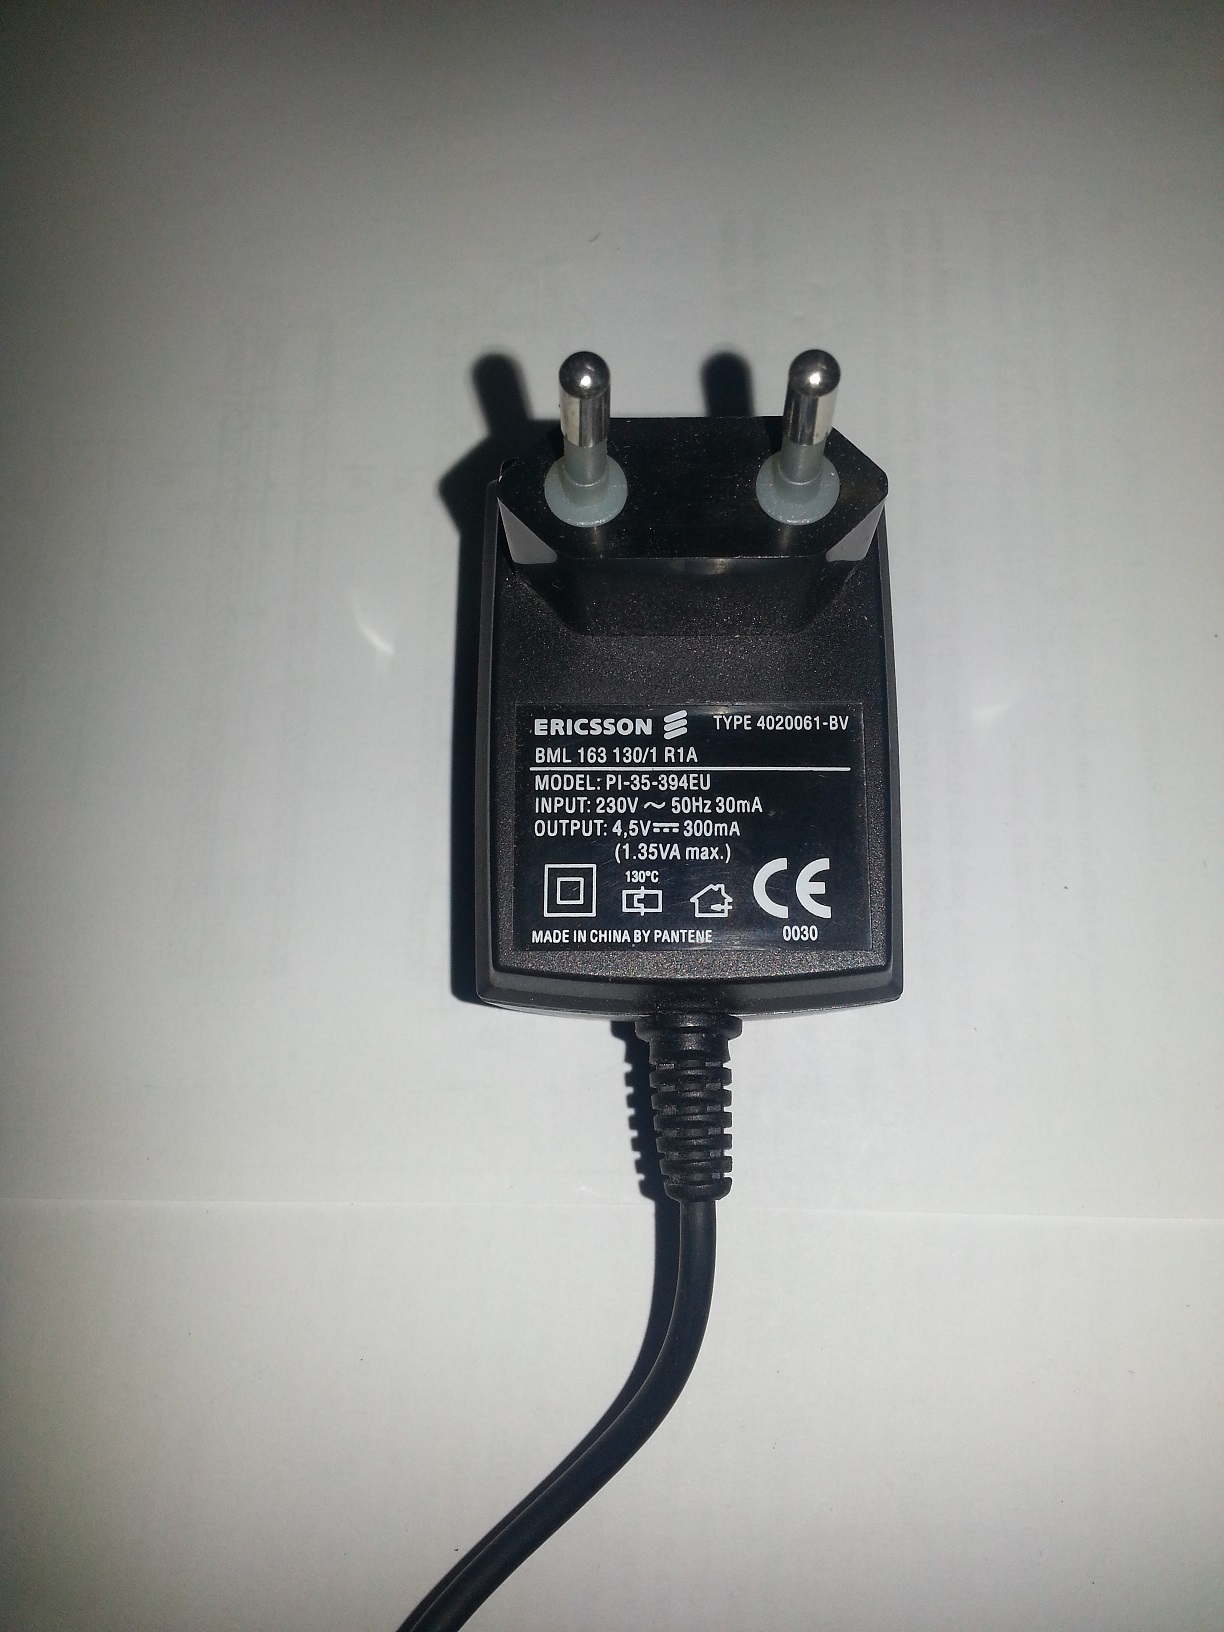 ADAPTER / ALIEMNTATORE AC-DC 220V - without connector 4.5v-300ma